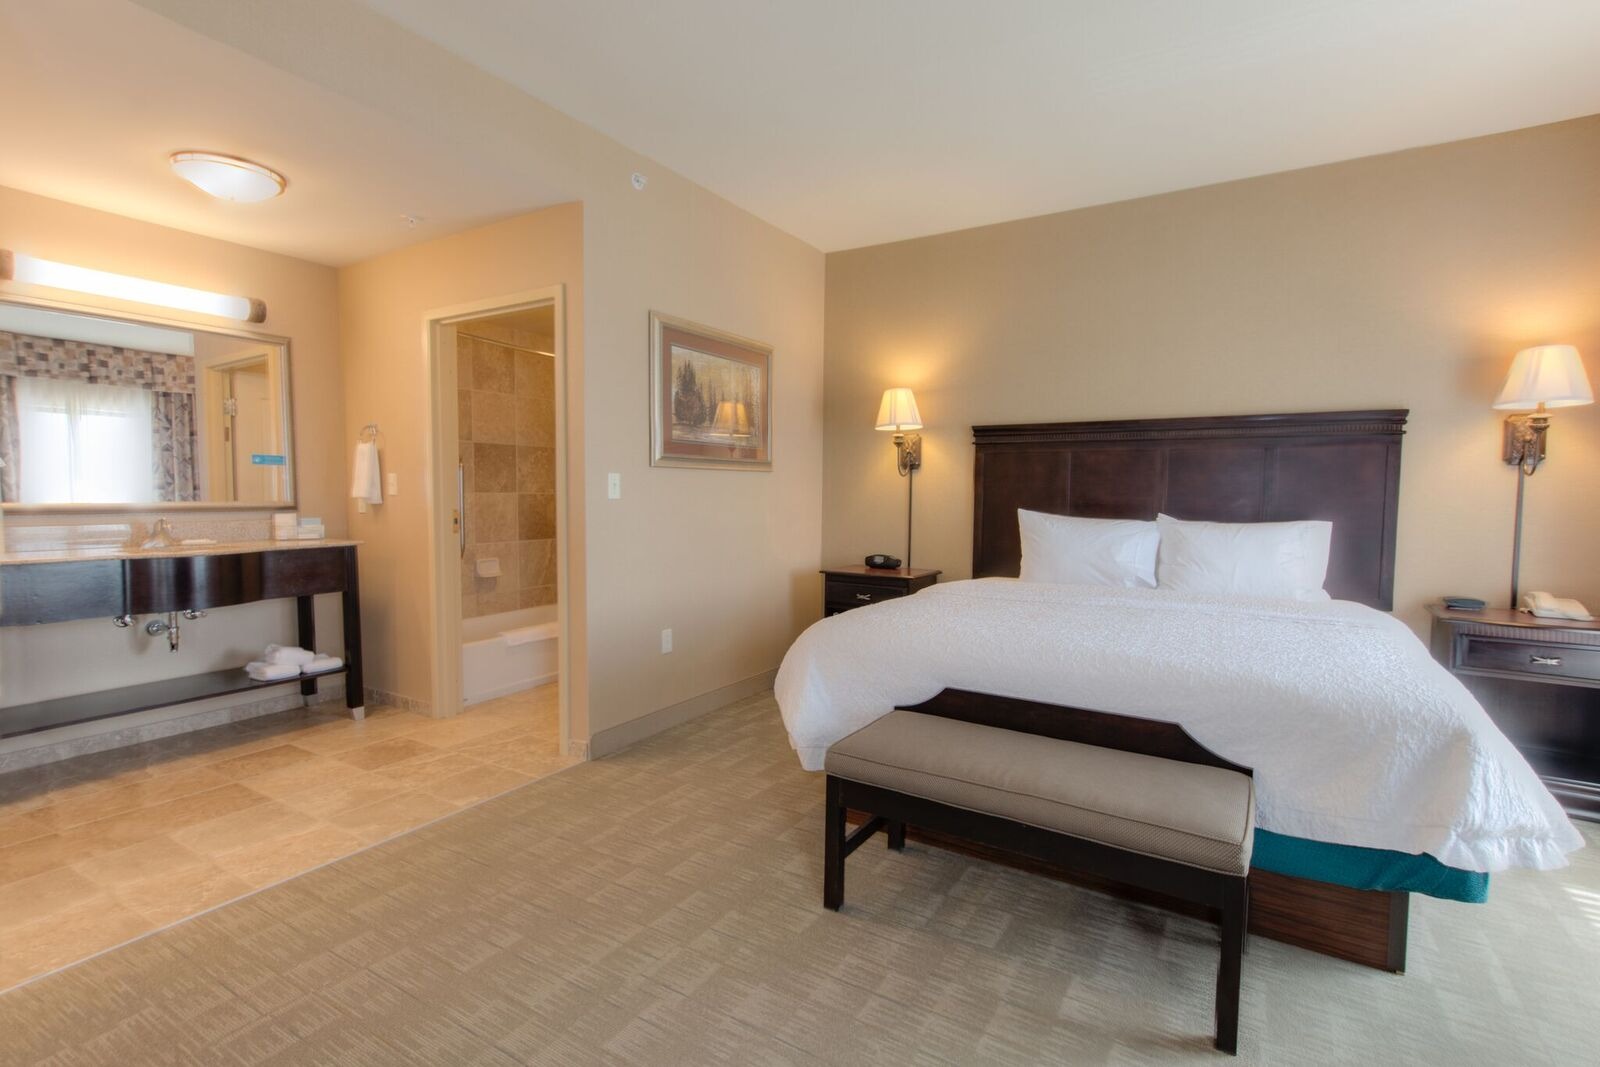 Hotel Room from Erck Hotels